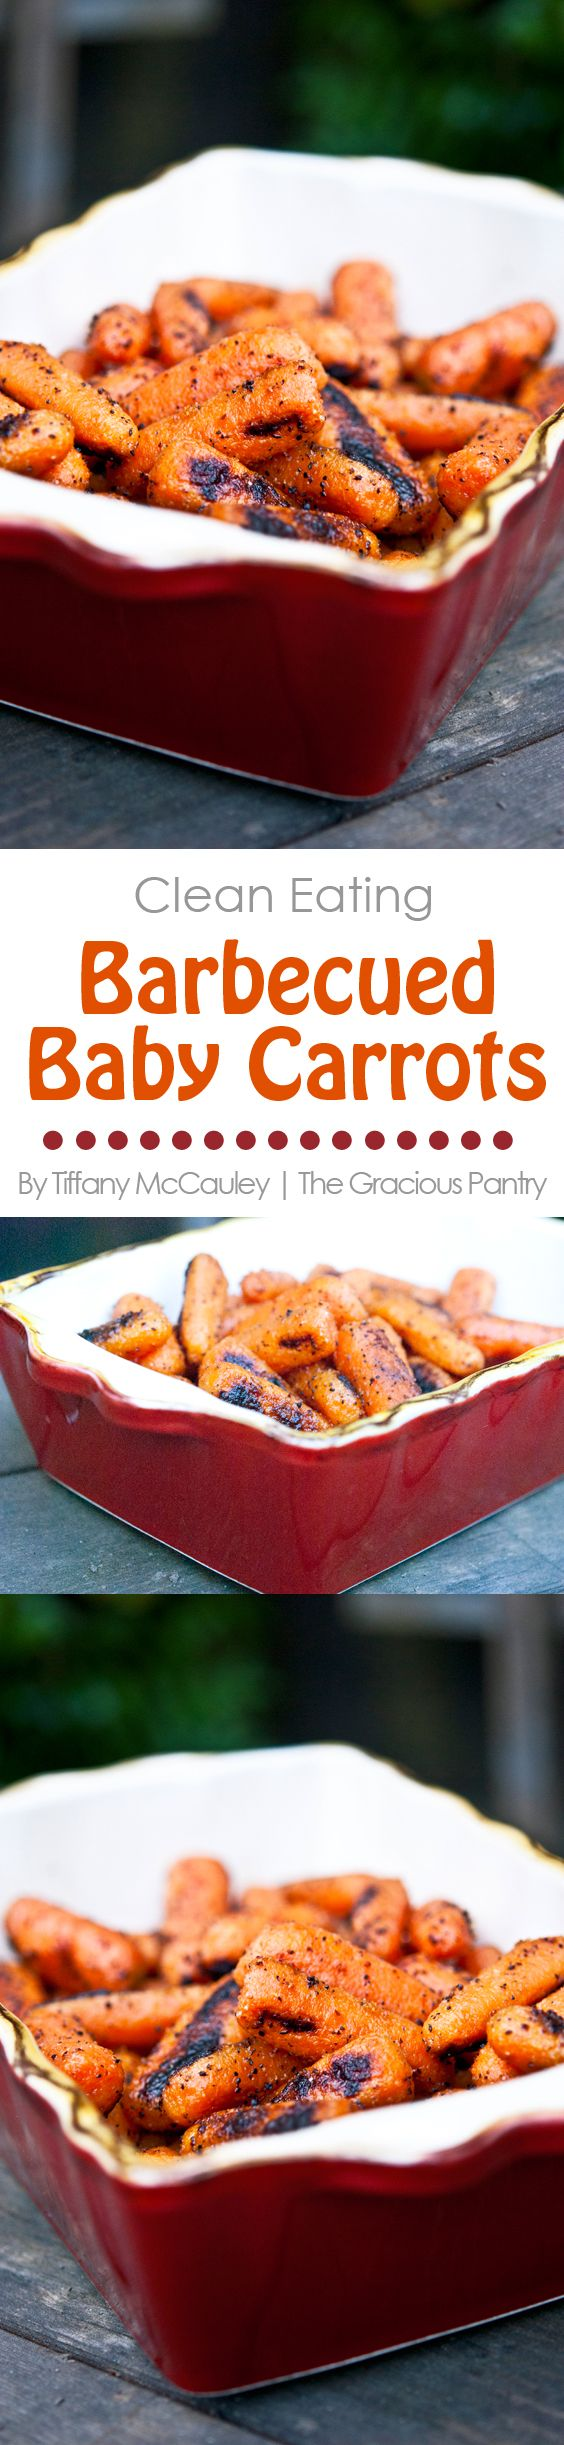 Clean Eating Recipes | Barbecued Carrots | Barbecue Recipes | Barbecued Vegetables ~ https://www.thegraciouspantry.com